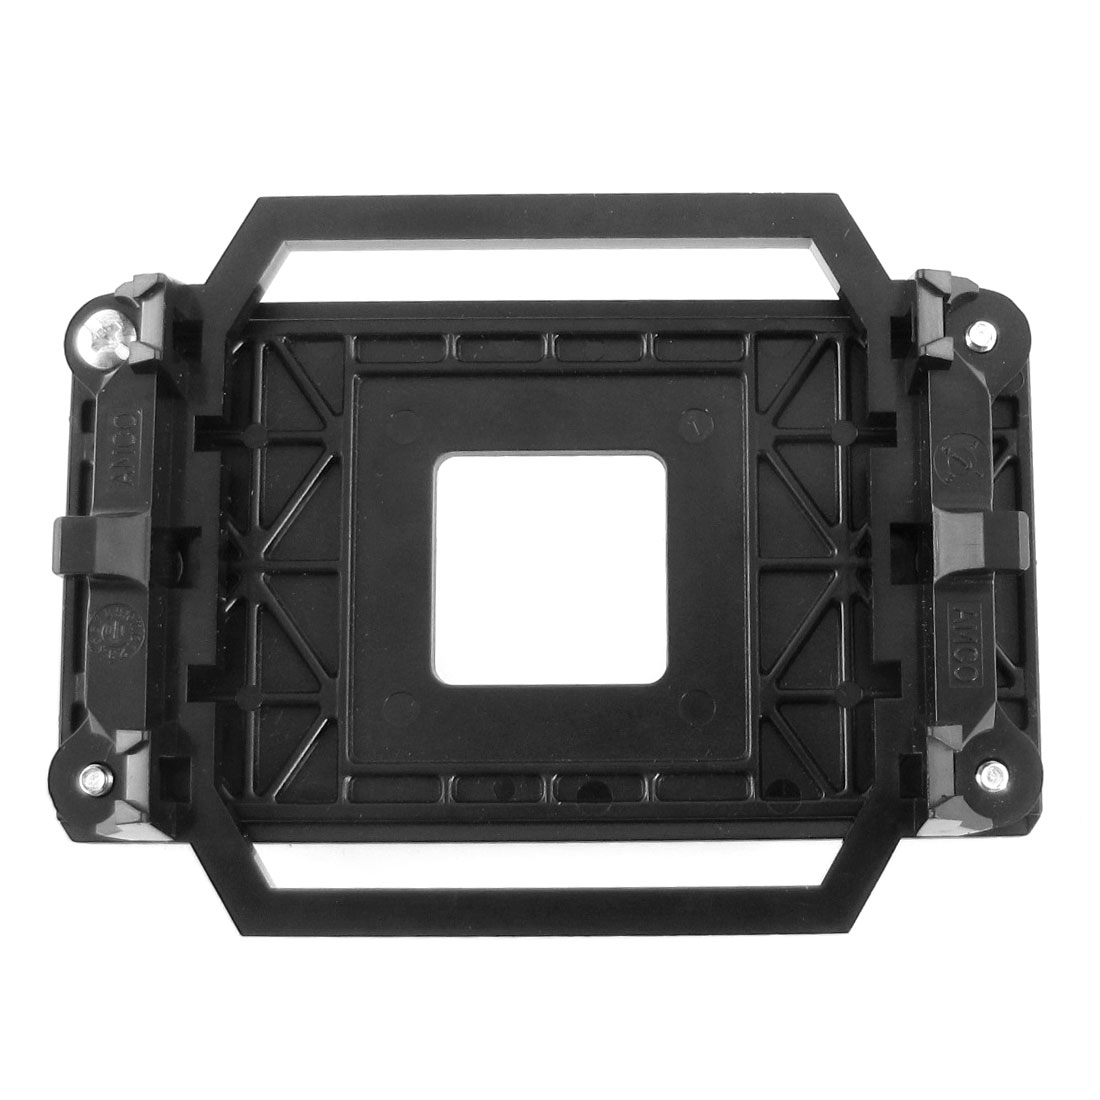 Black Fan Retainer Bracket Module for AMD Socket 940 AM2 CPU